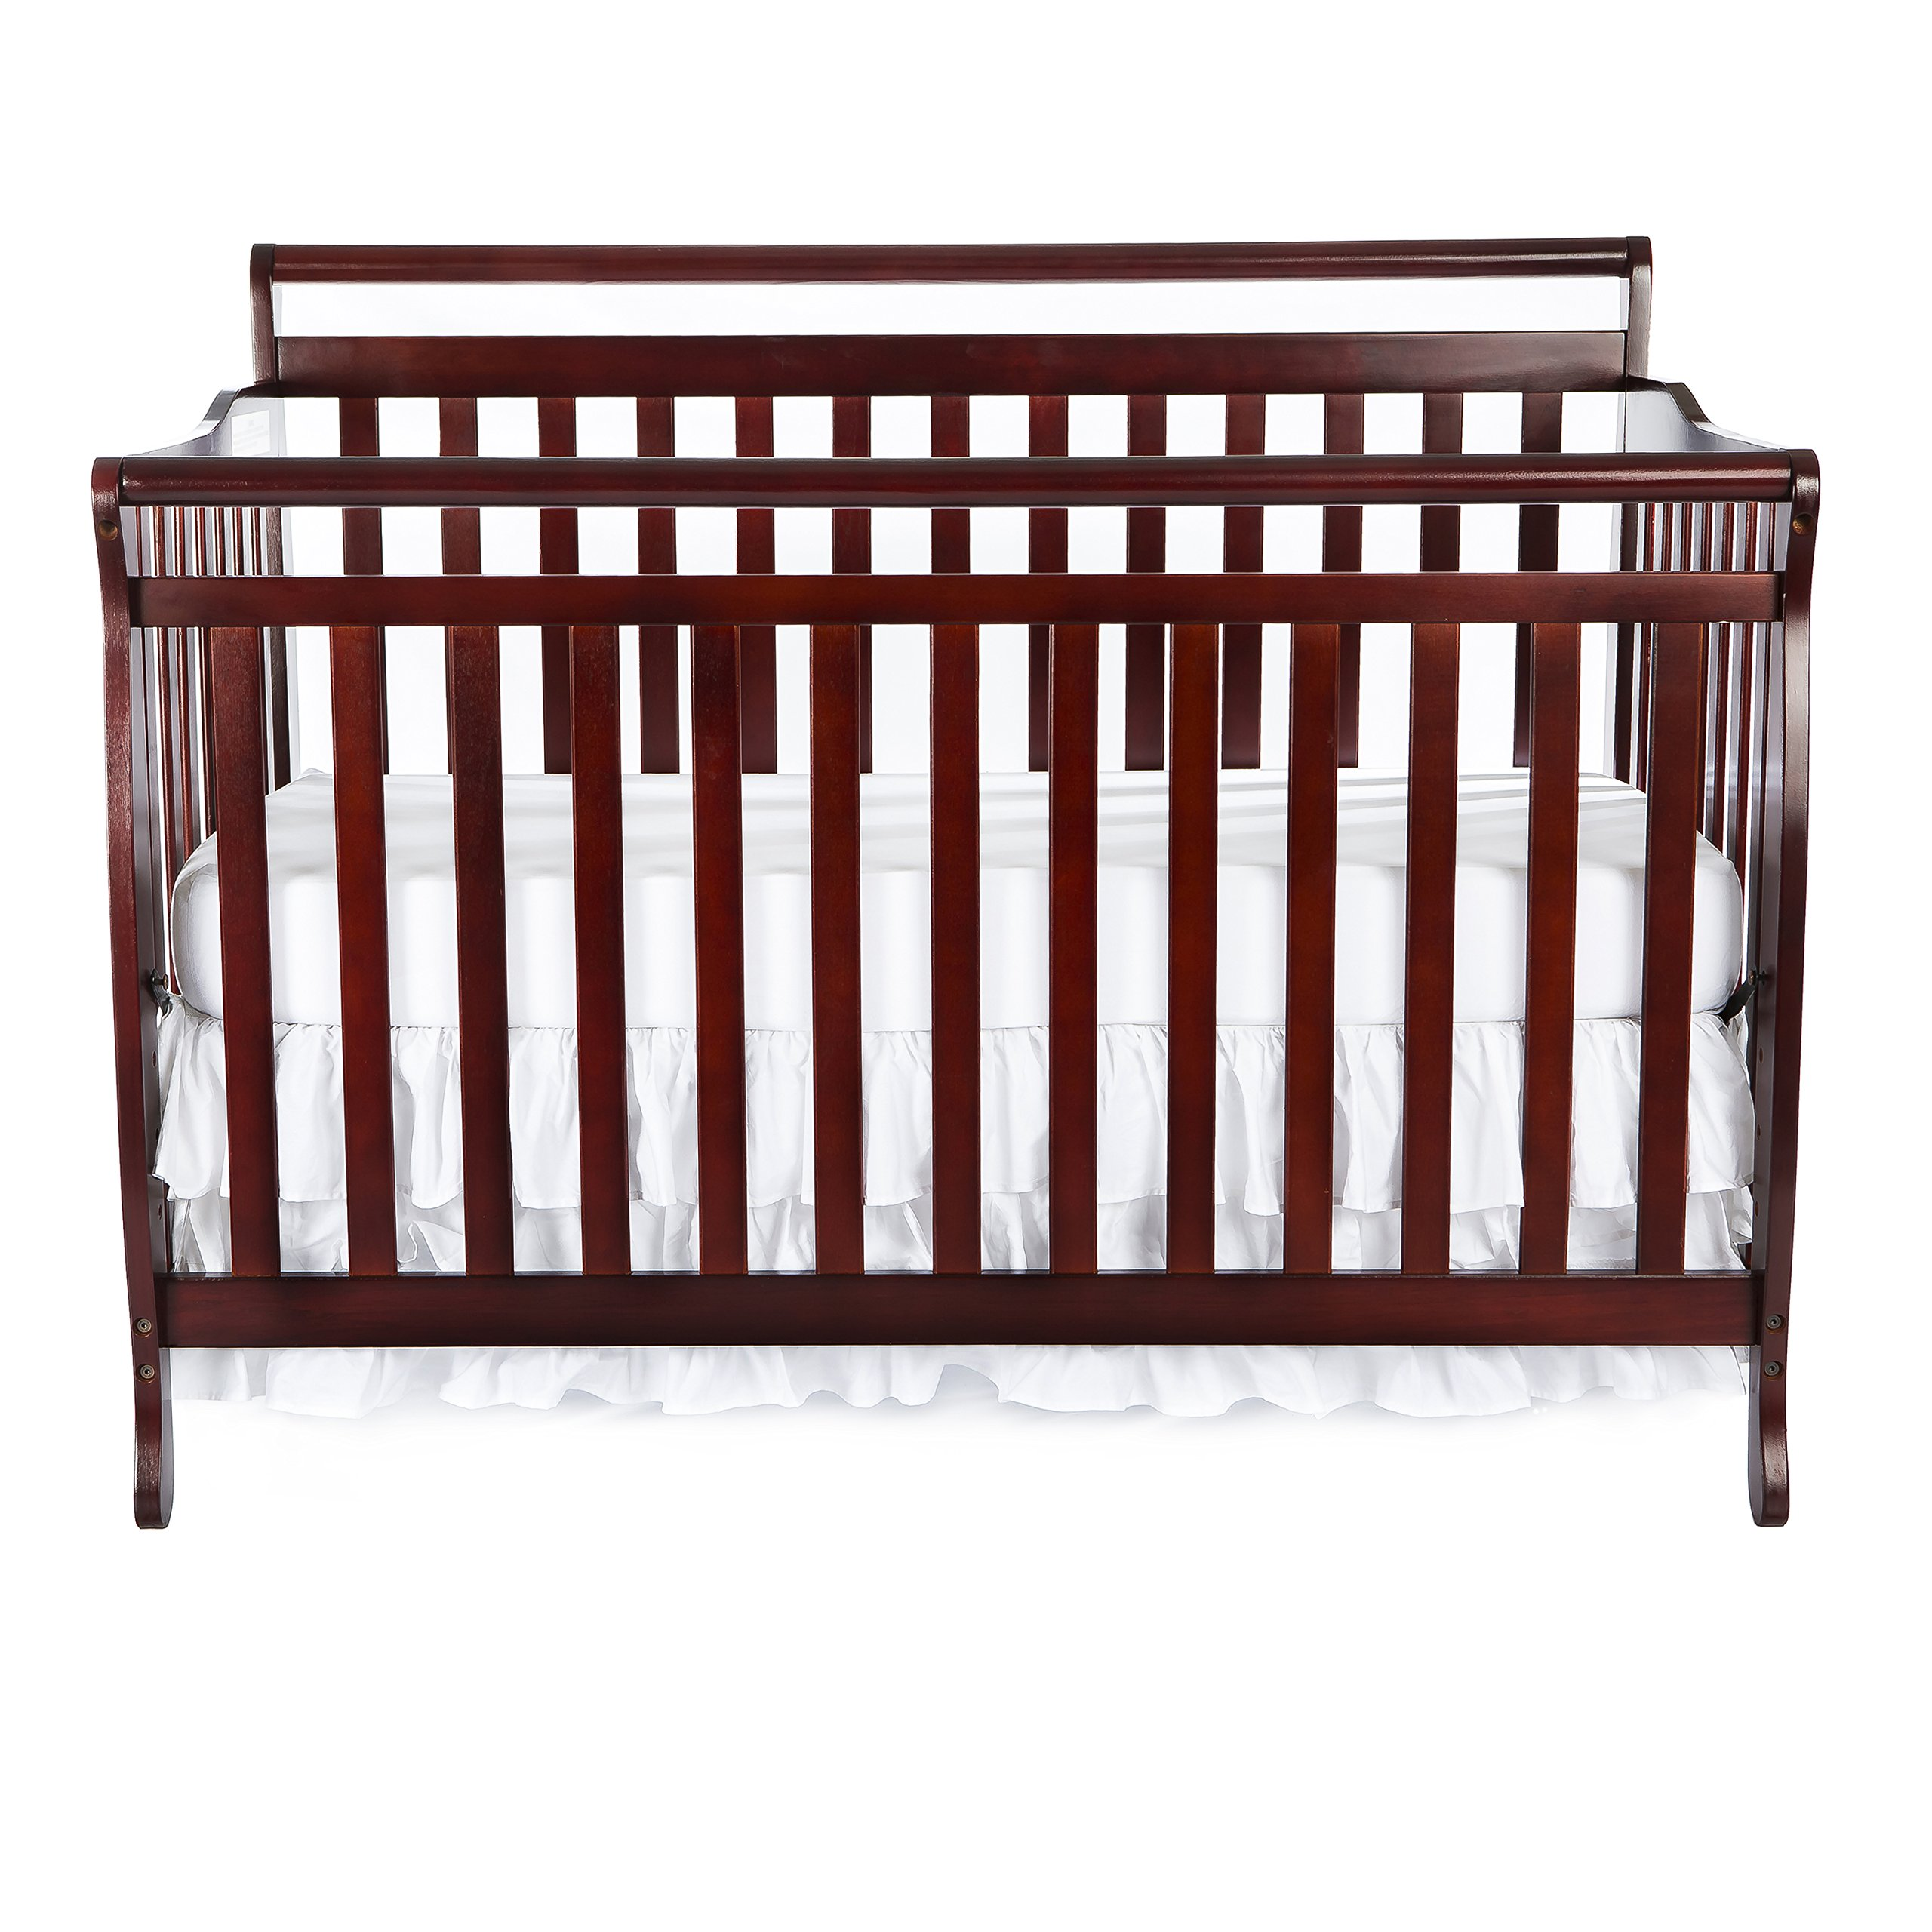 Dream On Me Liberty 5-in-1 Convertible Crib, Cherry by Dream On Me